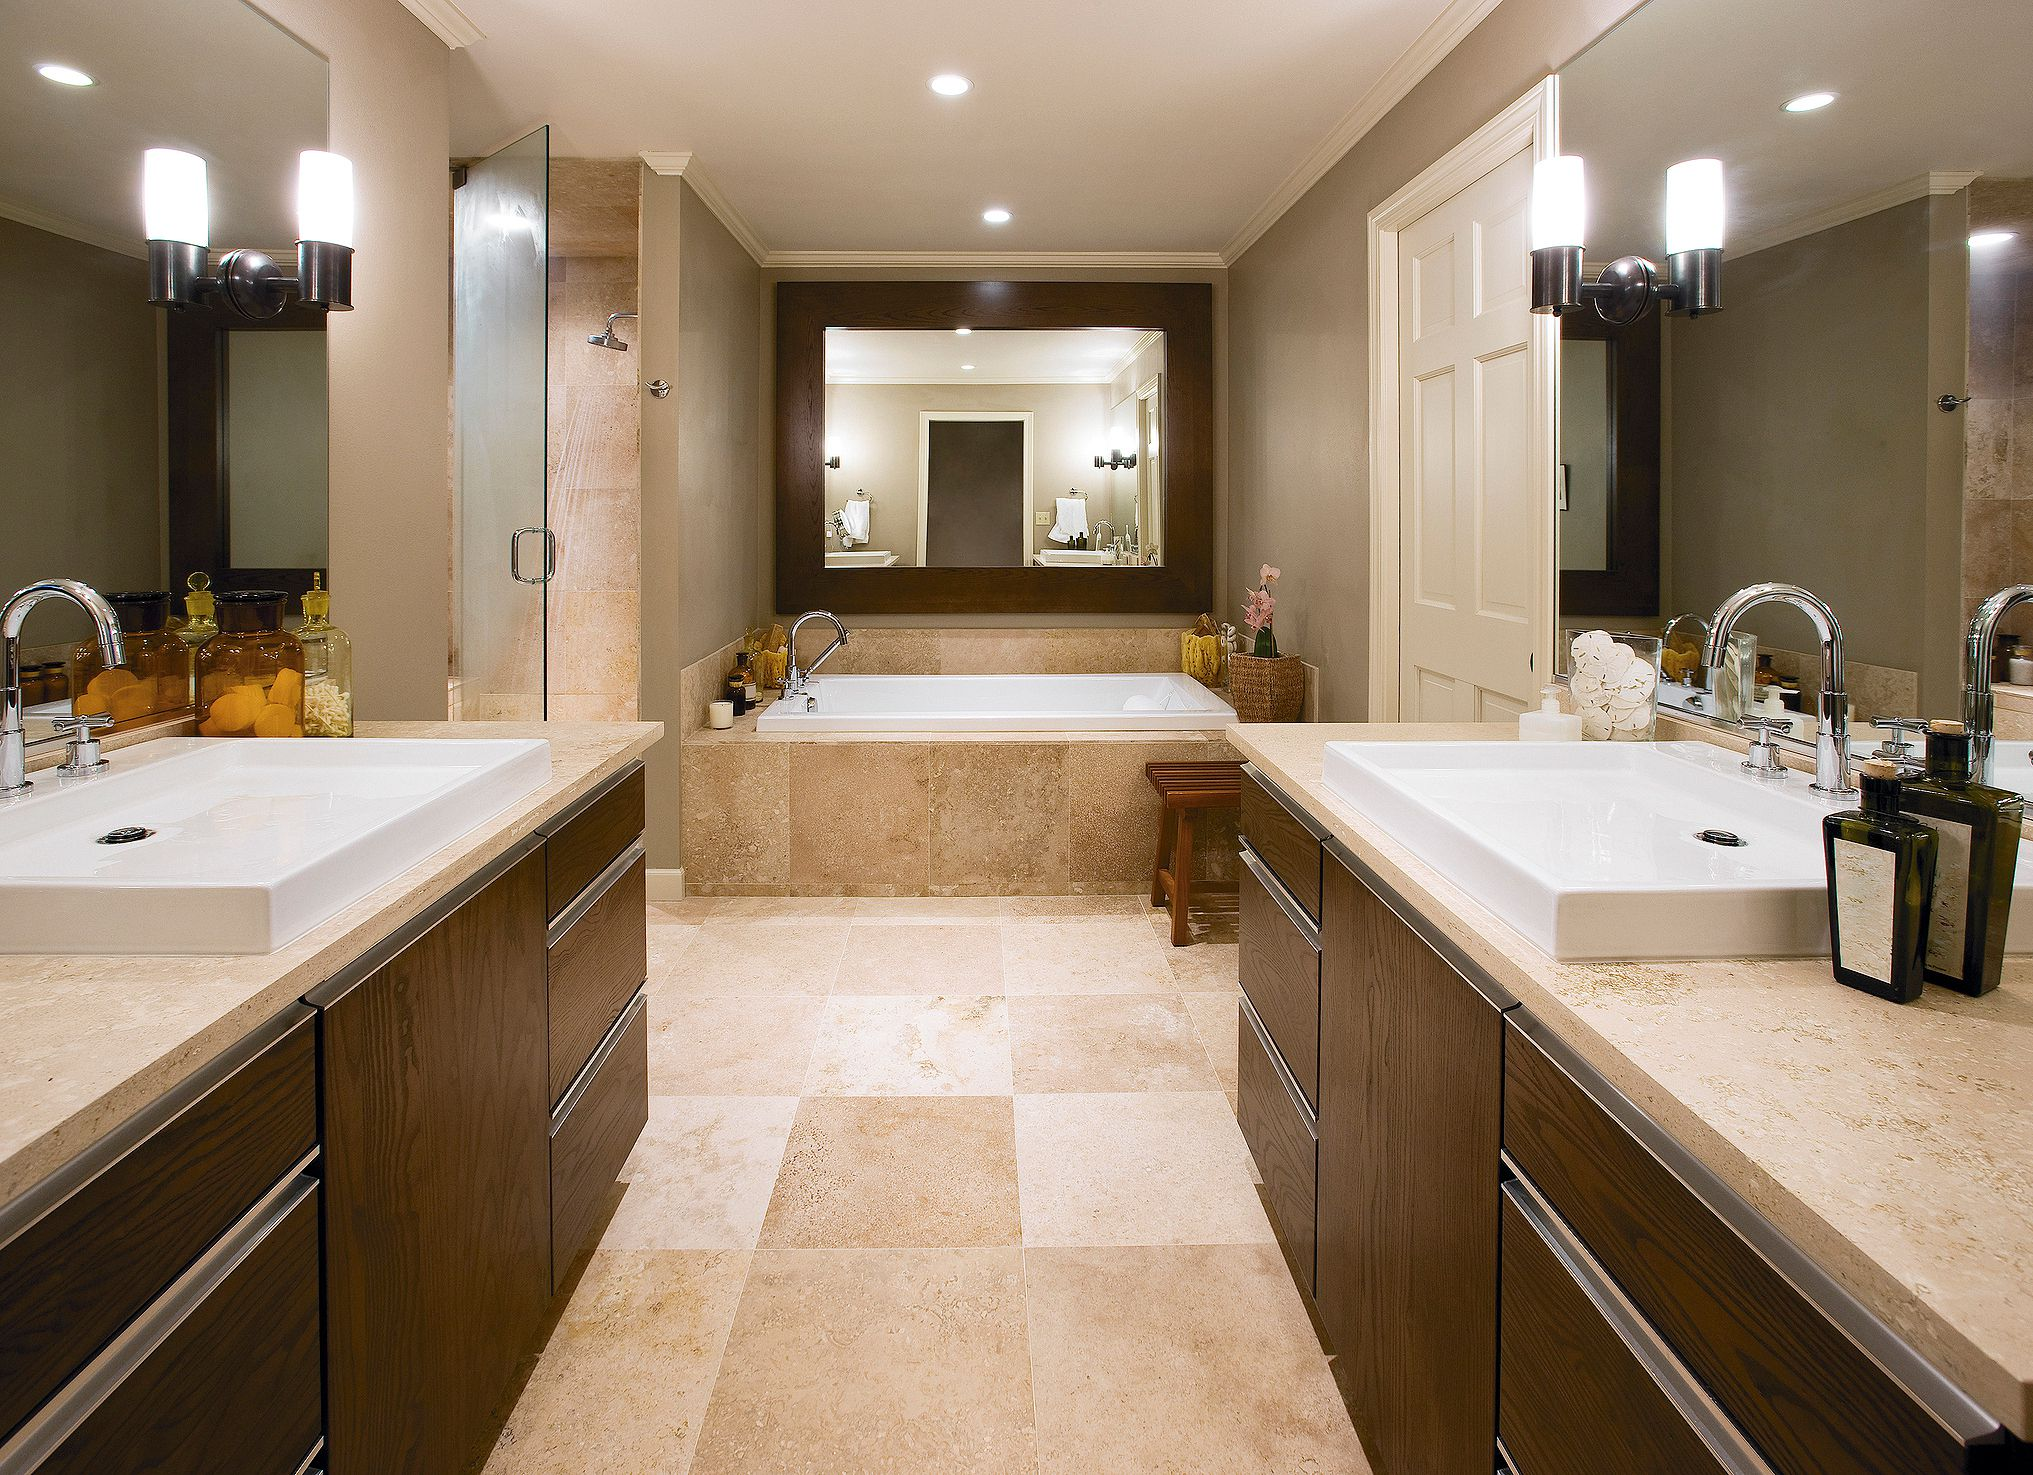 Top 5 bathroom flooring options for Bathroom flooring options